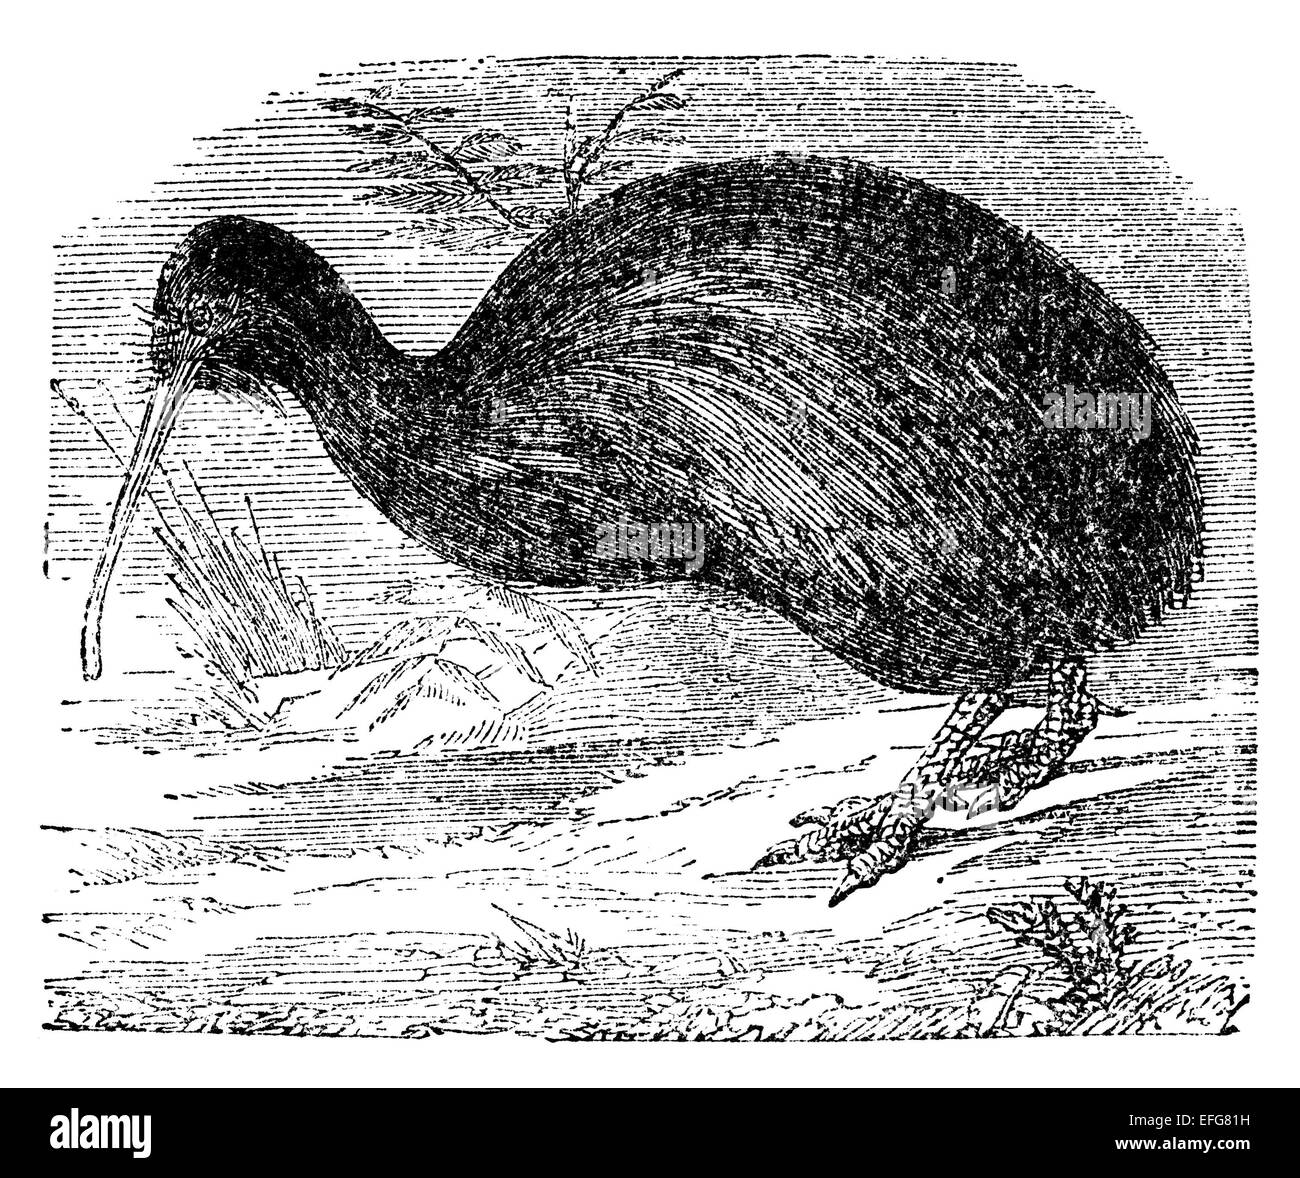 Victorian engraving of a kiwi bird. Digitally restored image from a mid-19th century Encyclopaedia. - Stock Image